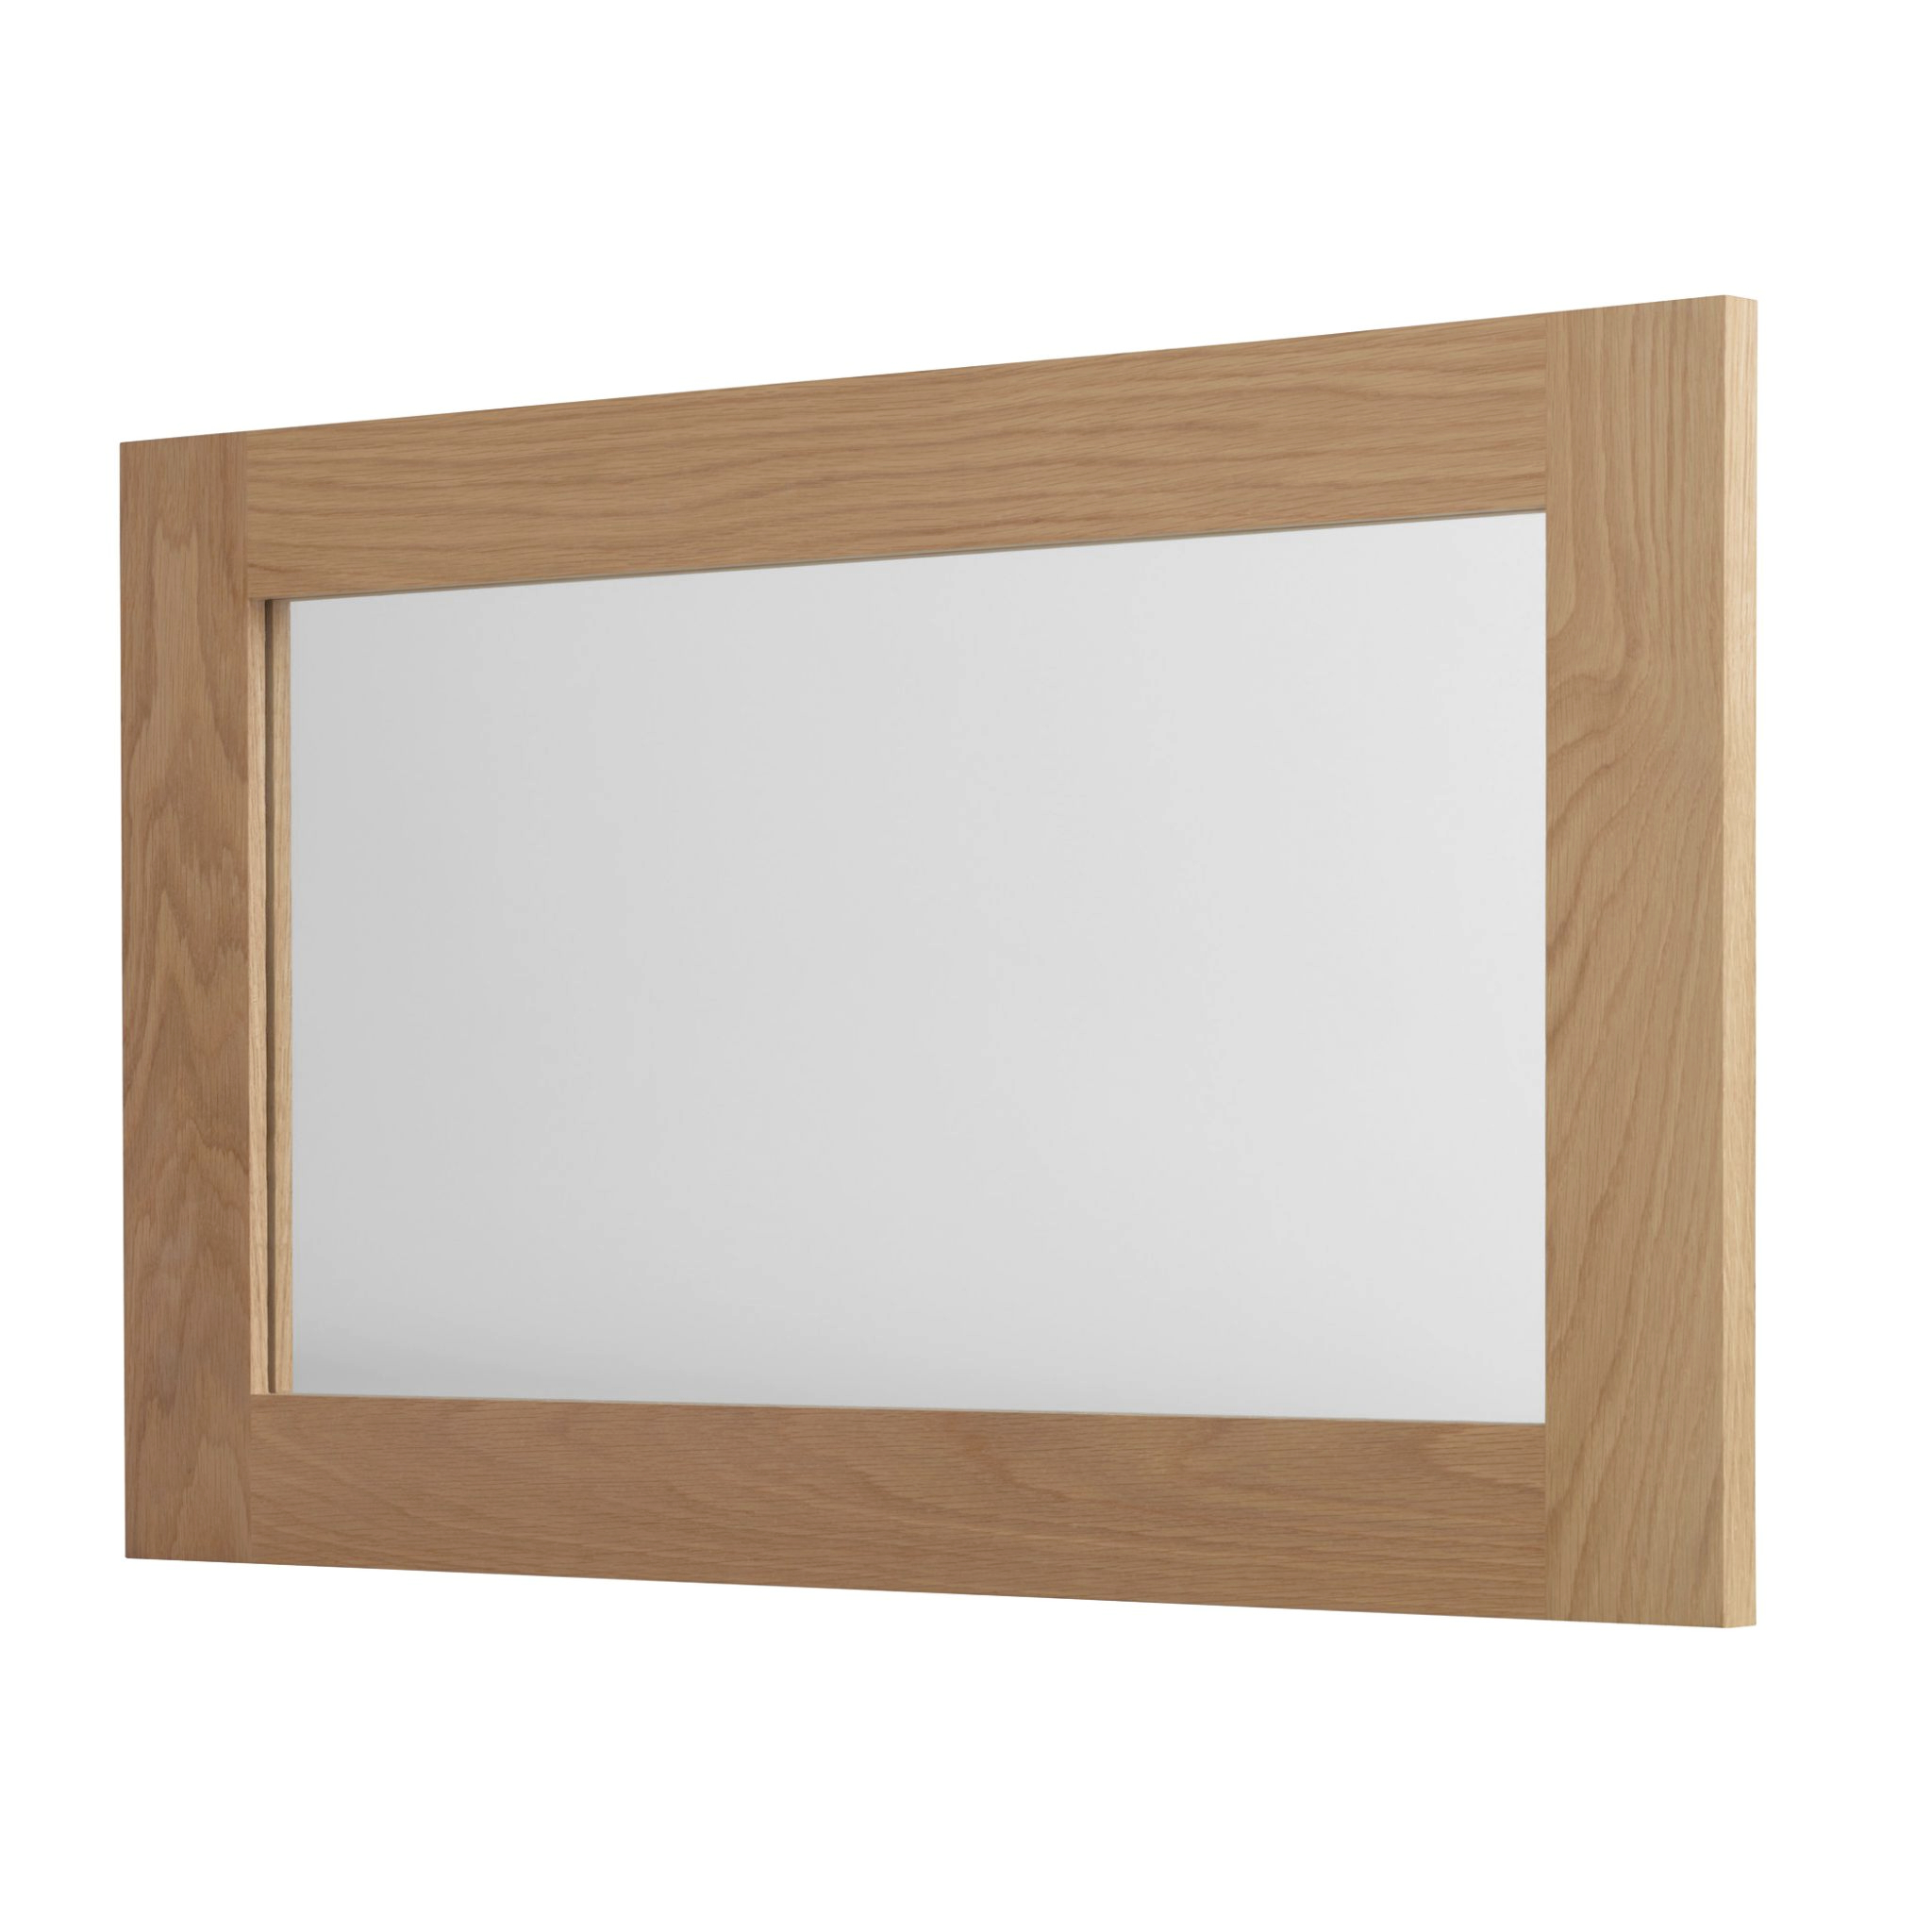 Solid Oak Wall Mirror Large American White Oak Pertaining To Well Known Oak Wall Mirrors (View 3 of 20)